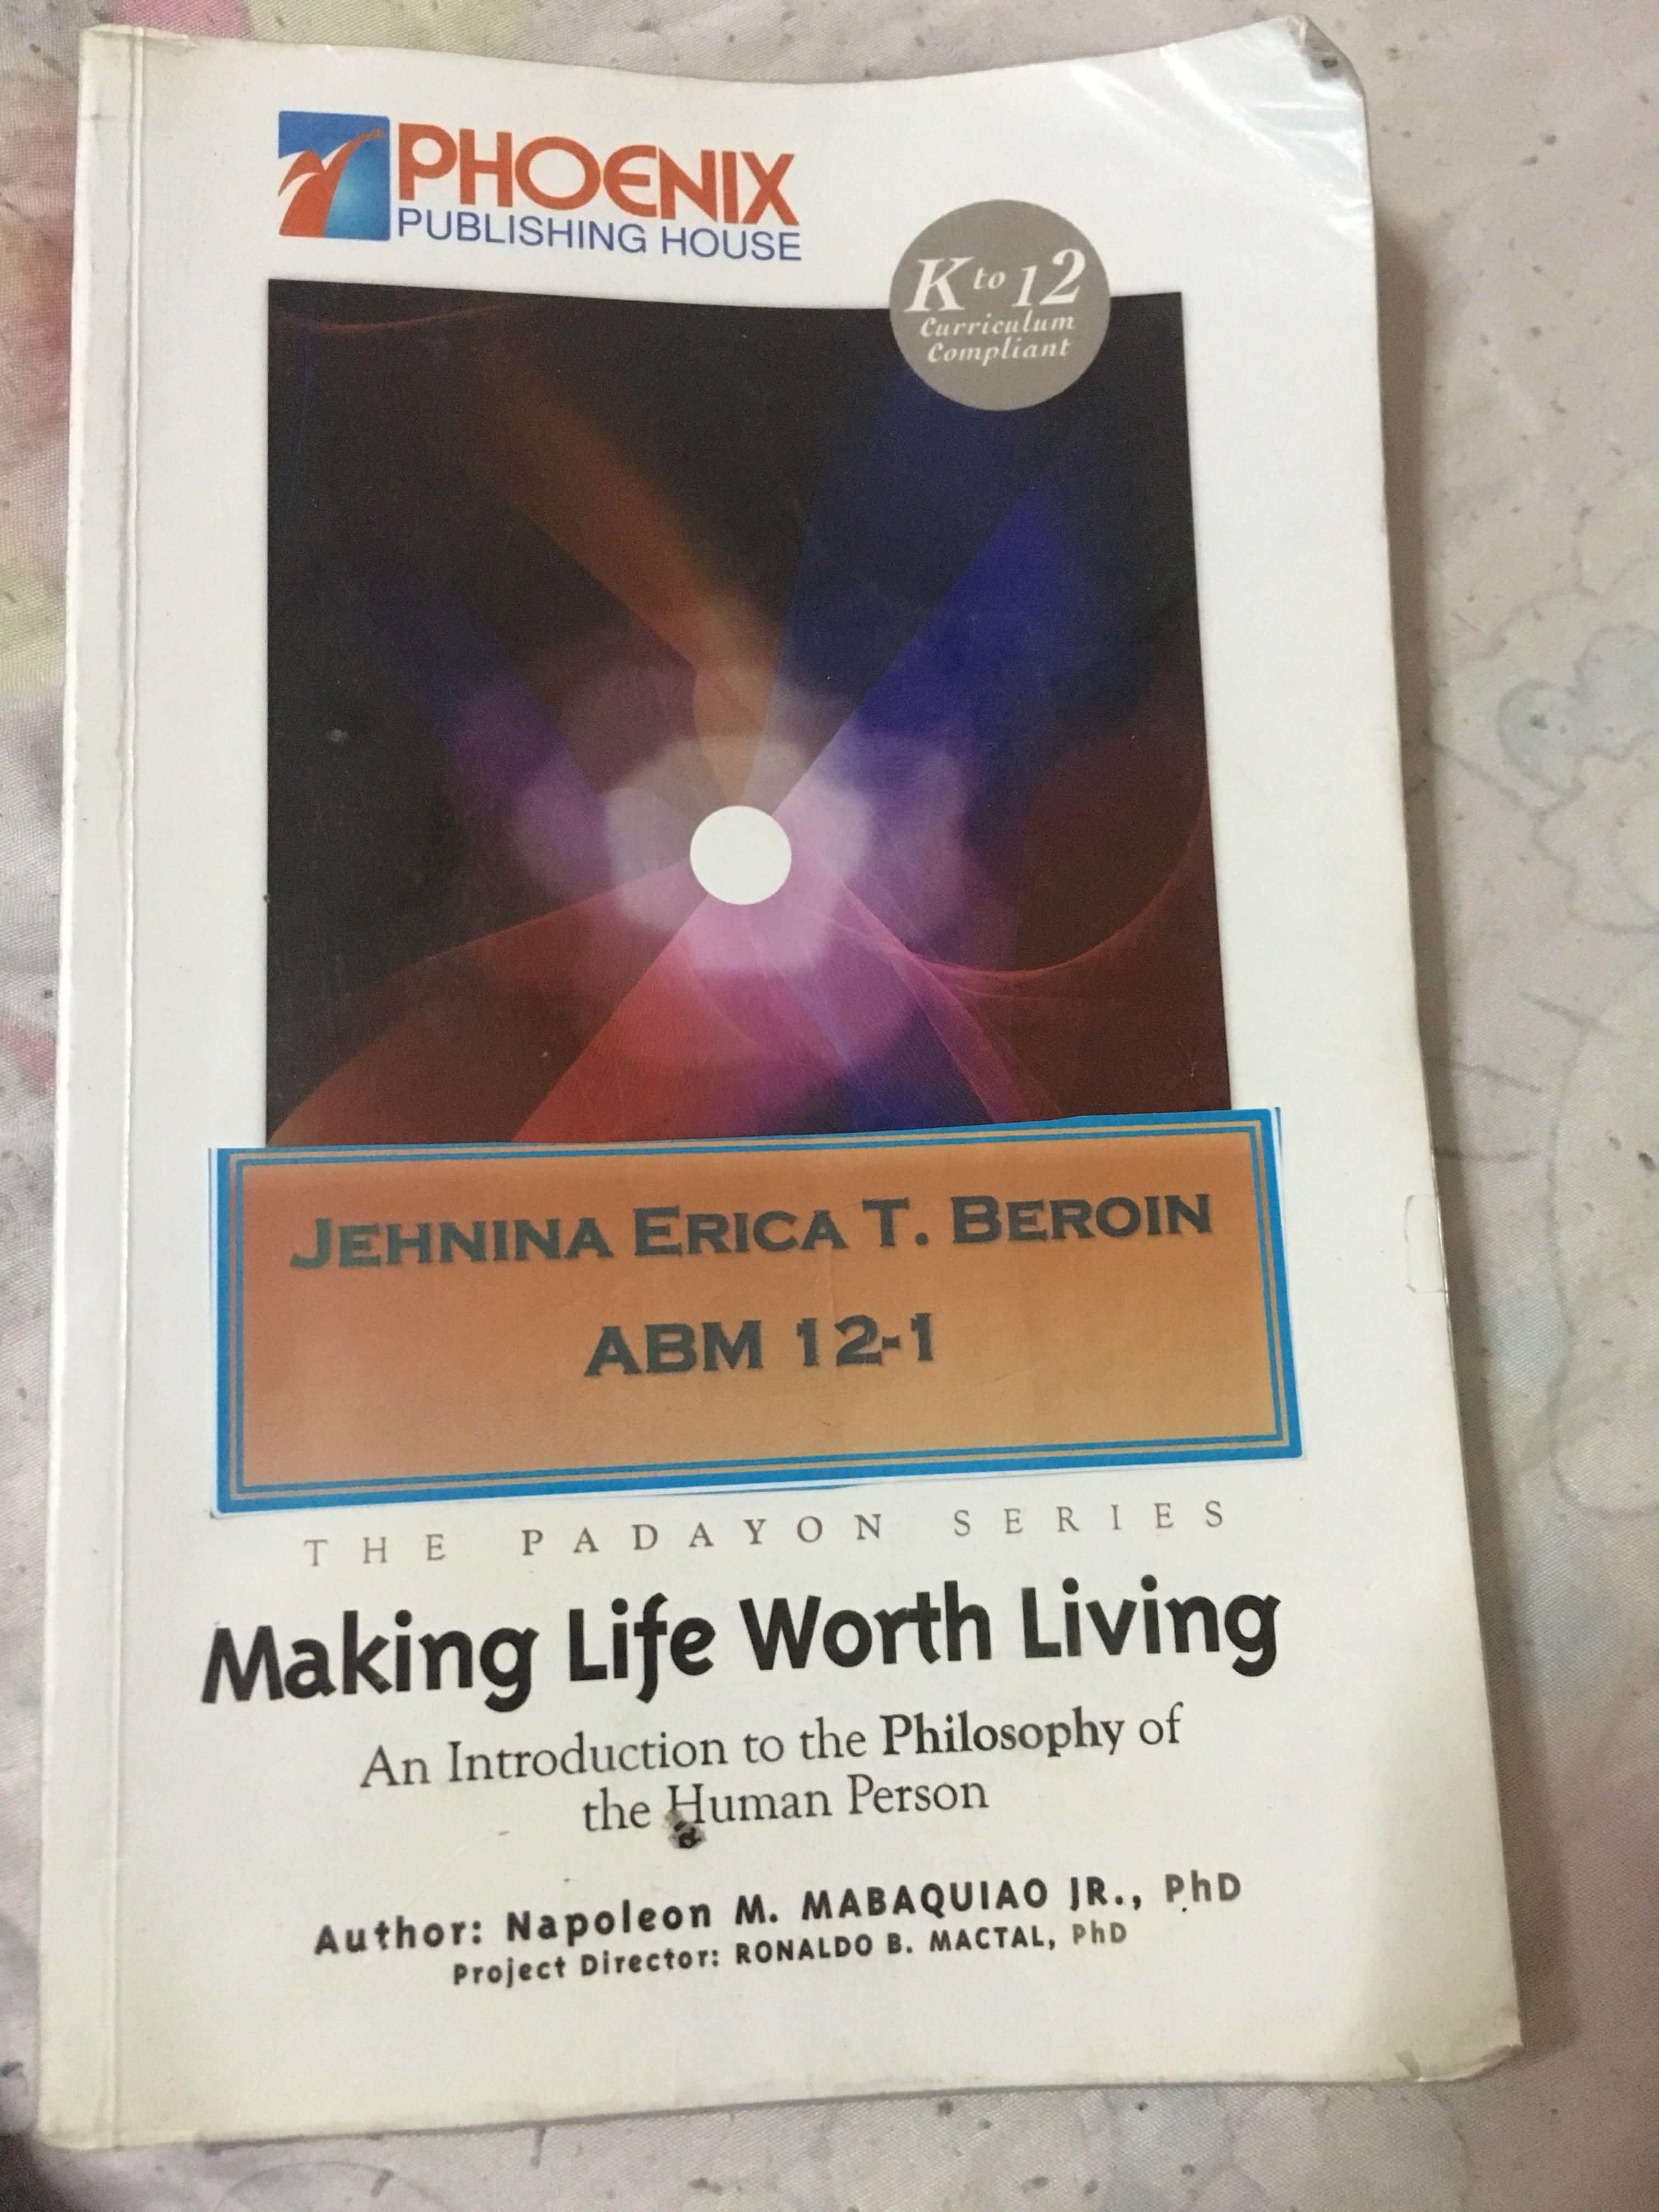 Making Life Worth Living: An Introduction to the Philosophy of the Human Person